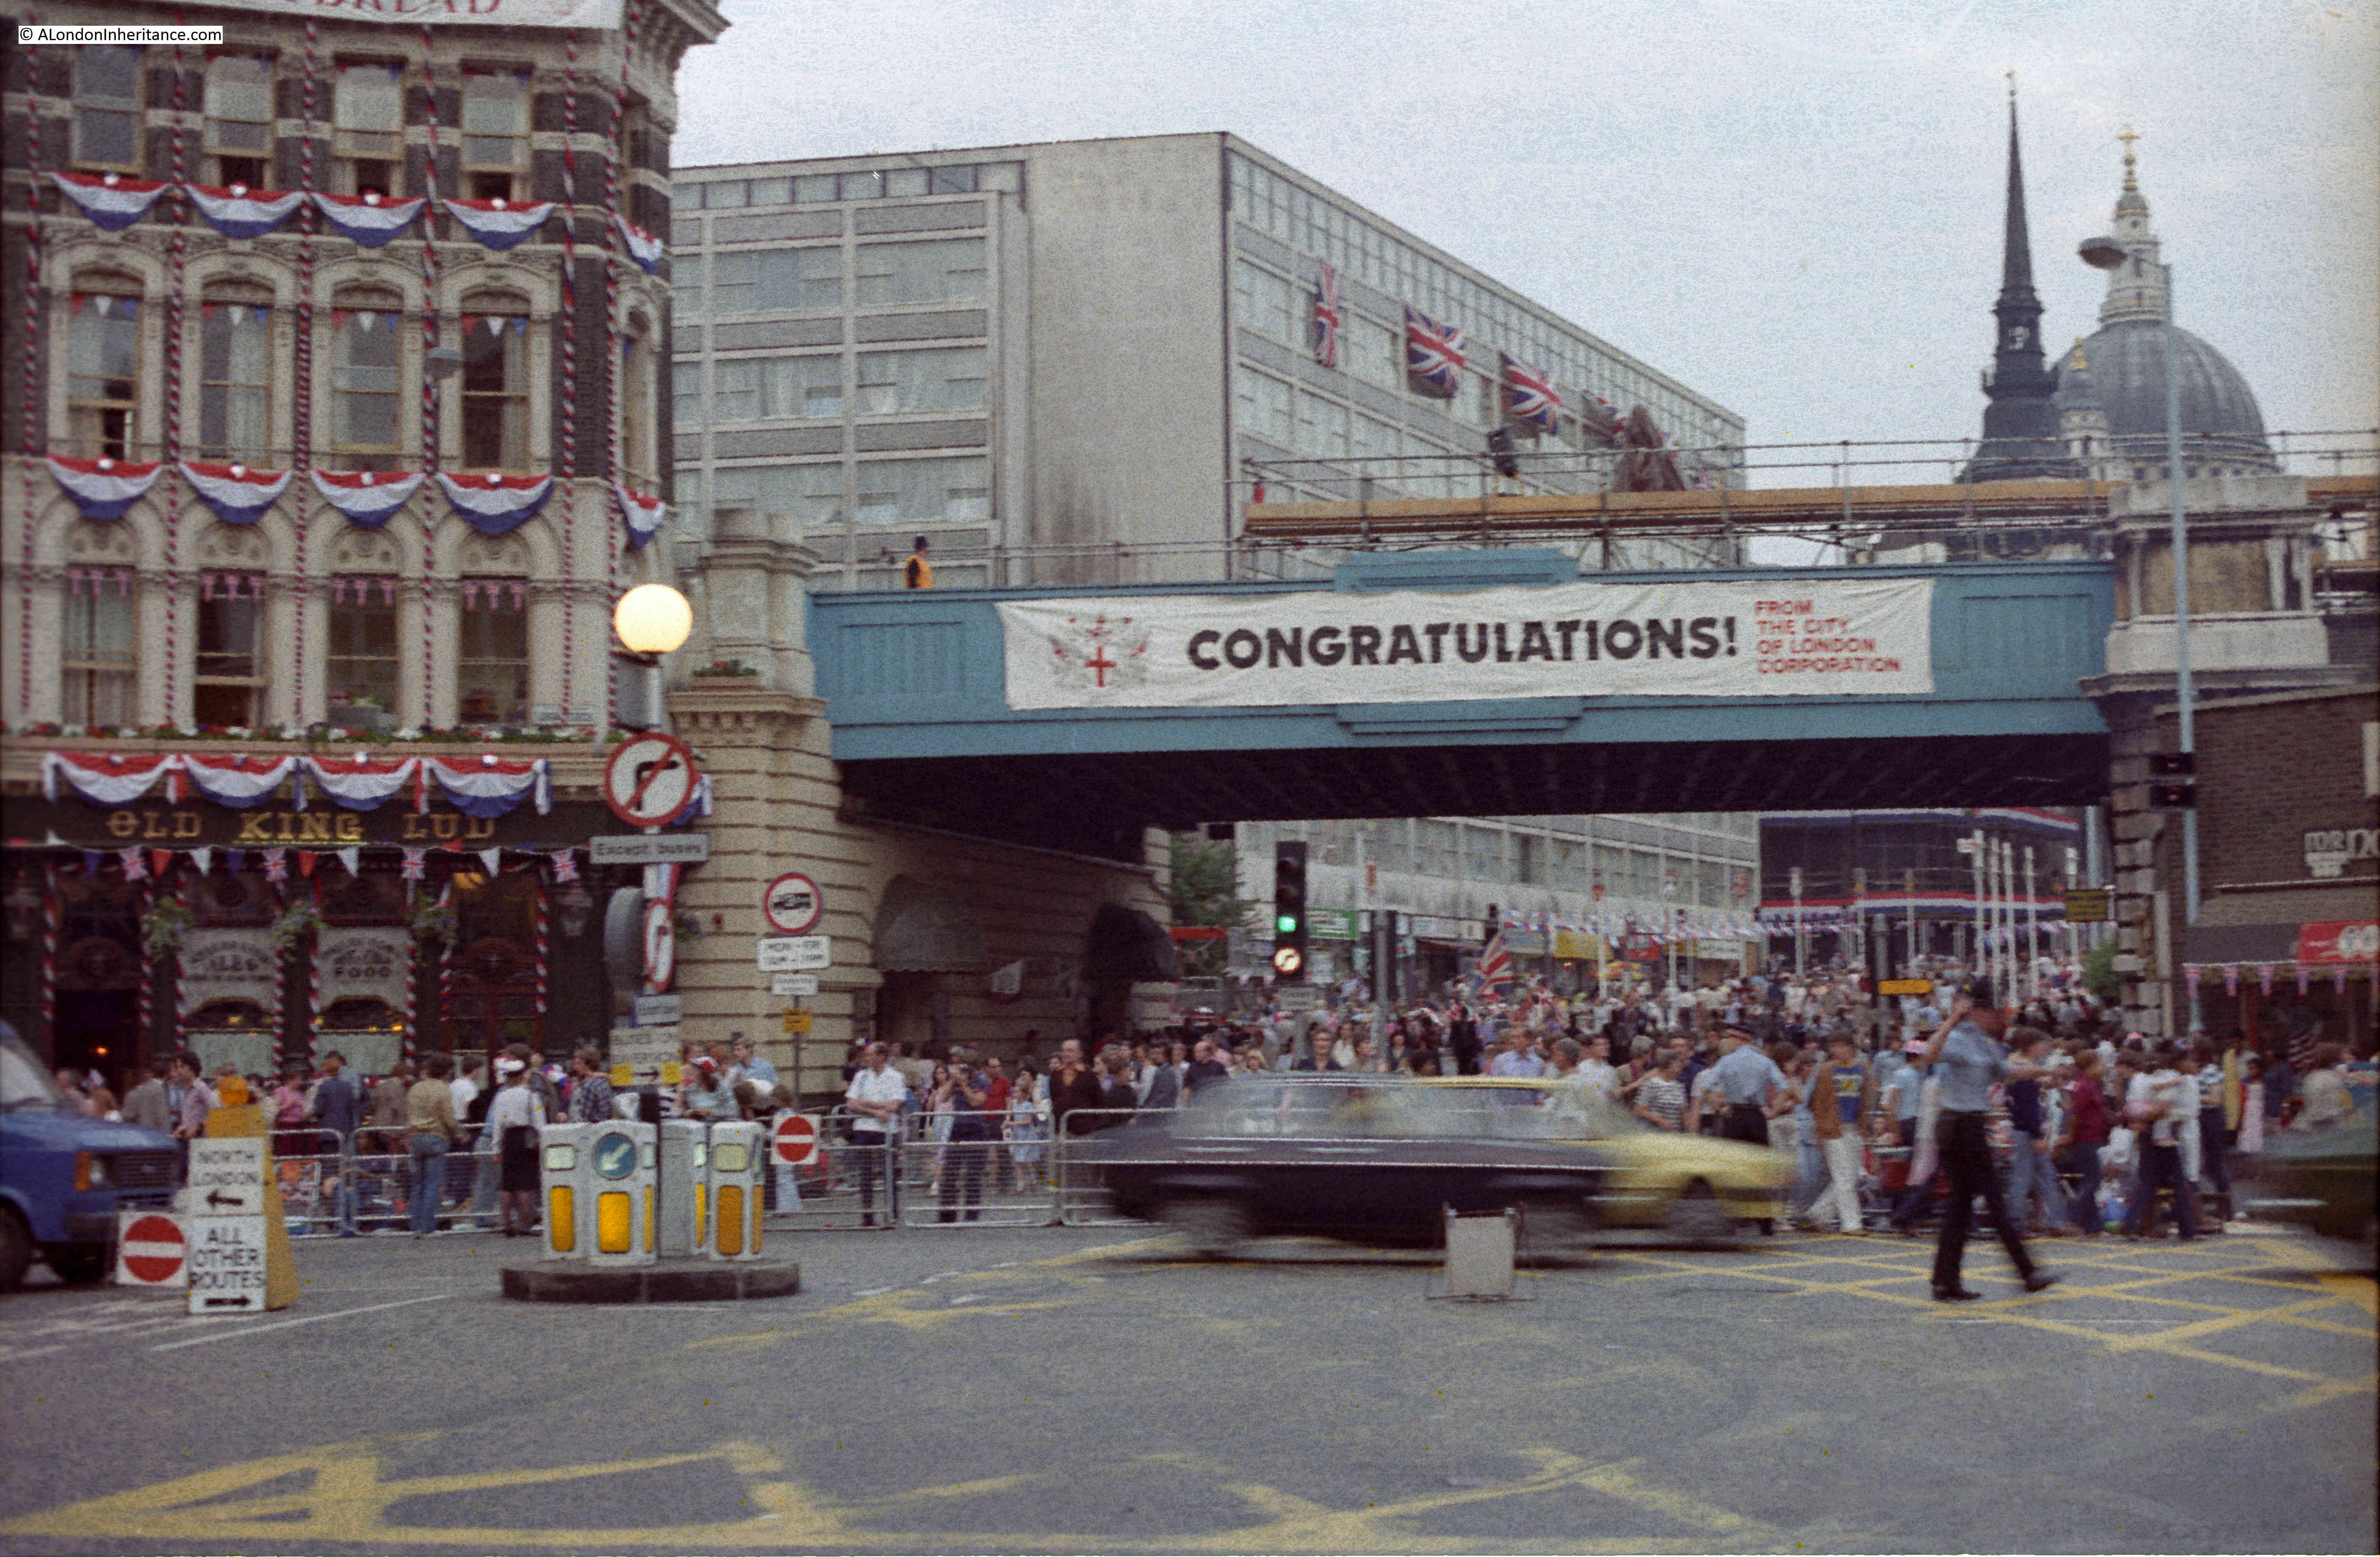 walking the streets on the evening before the 1981 royal wedding